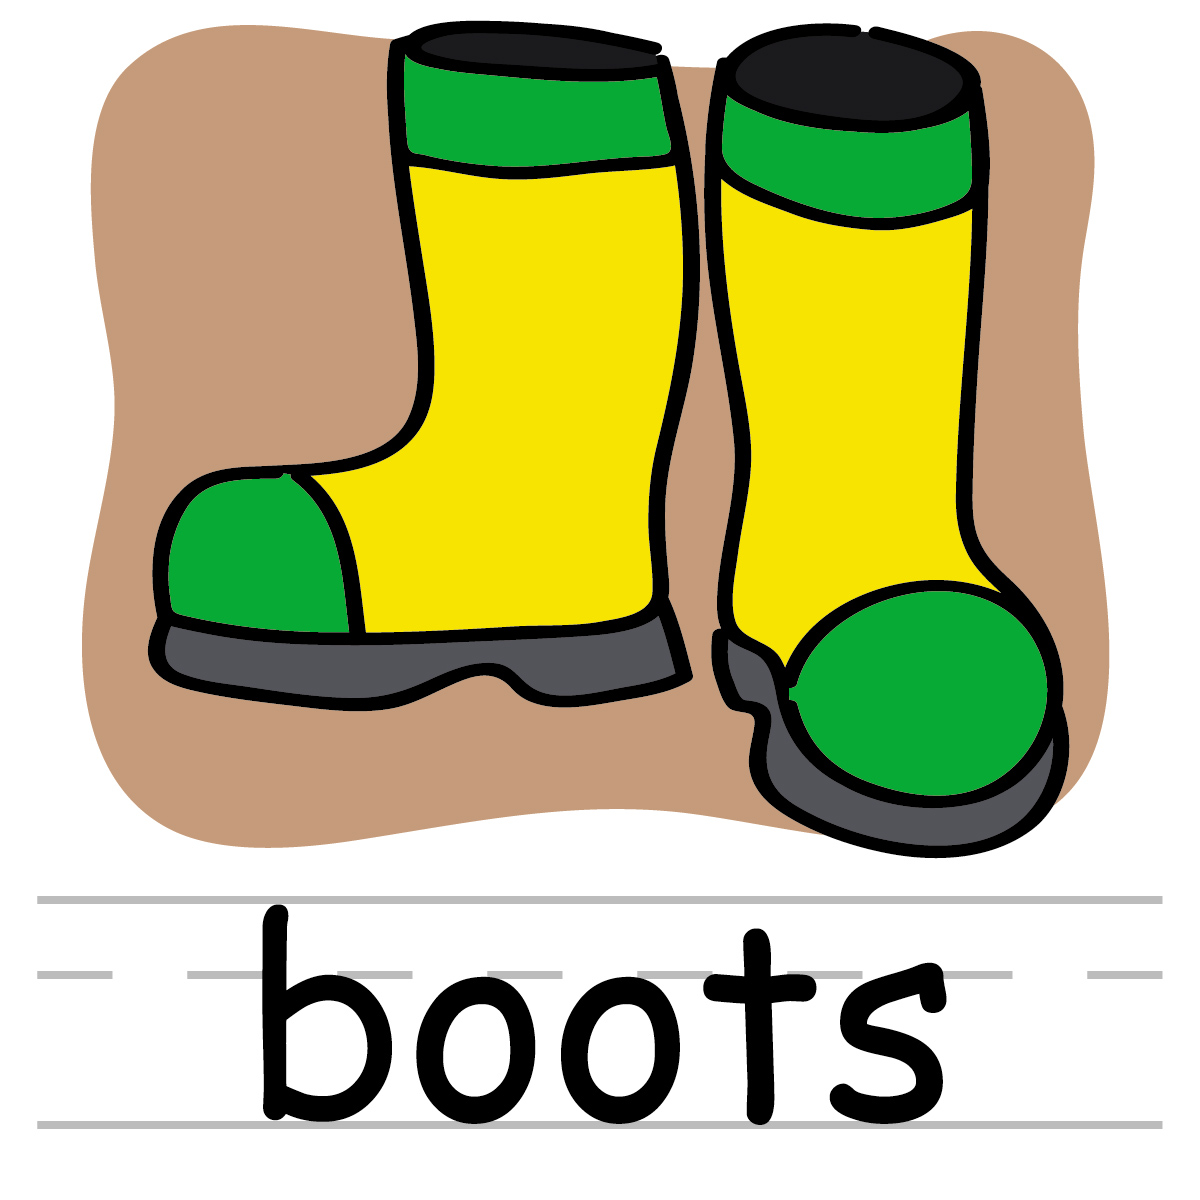 Hook clipart clothing #8